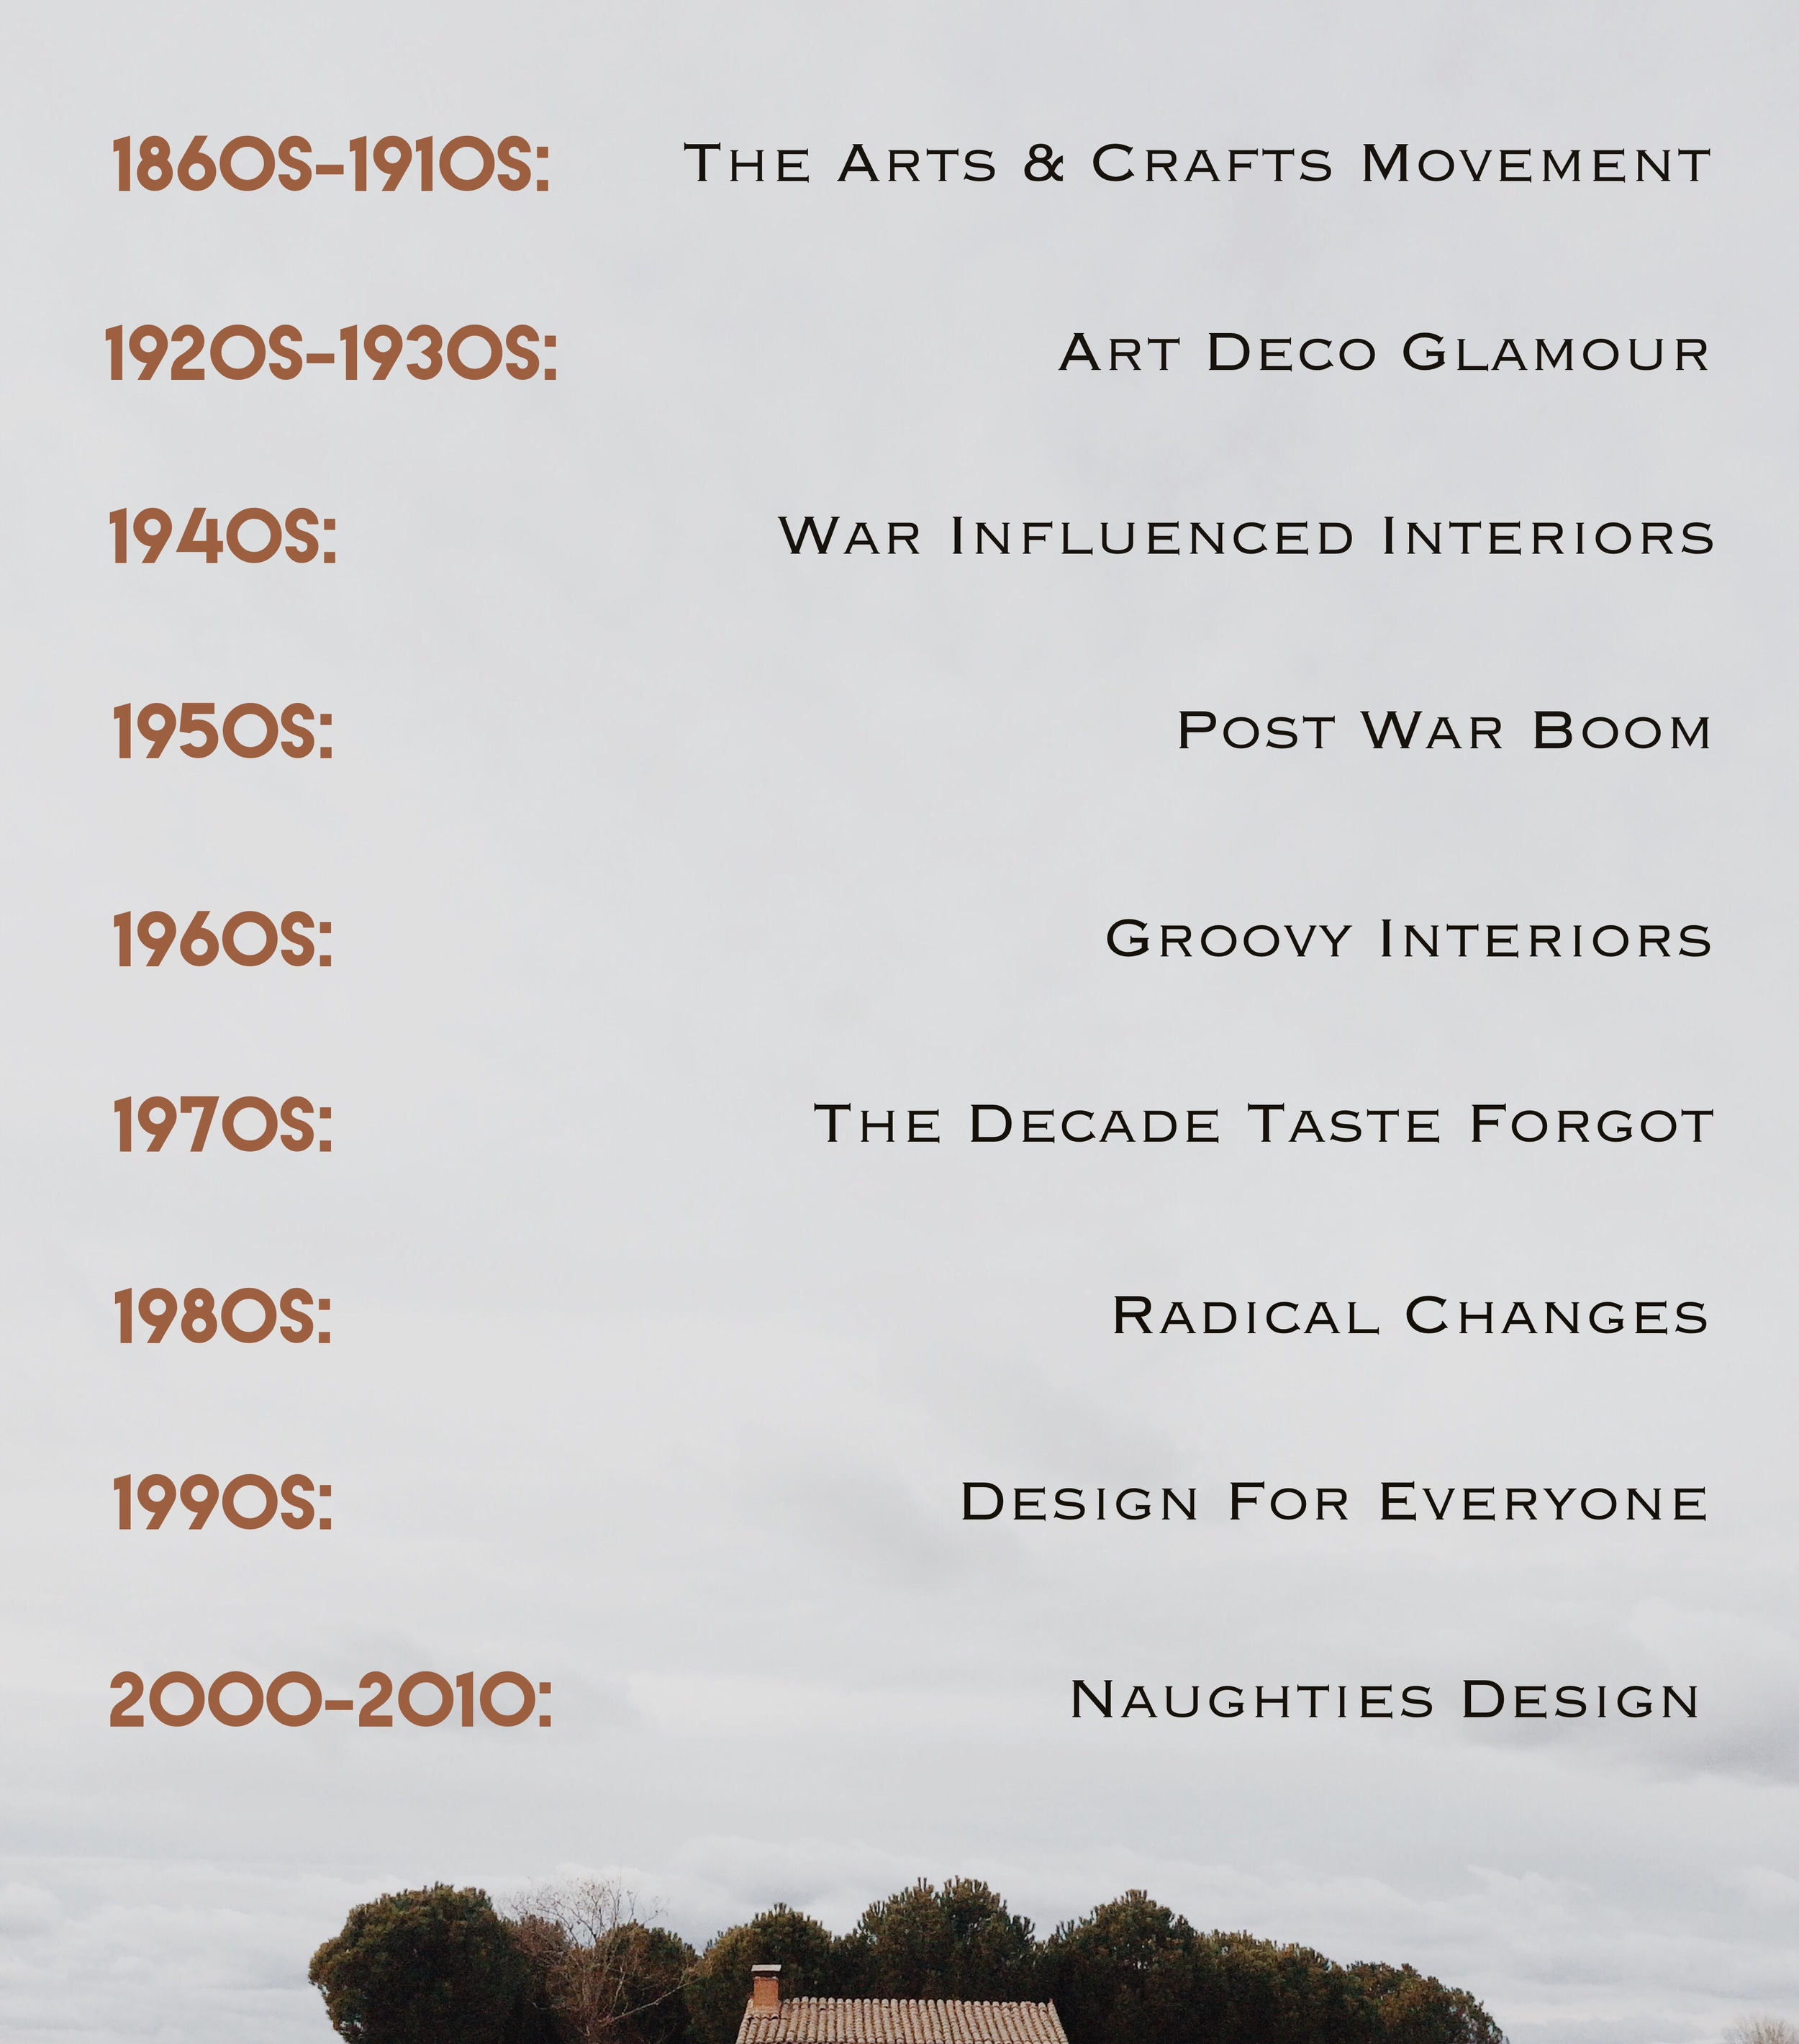 Design trends throughout the 20th century - an overview.